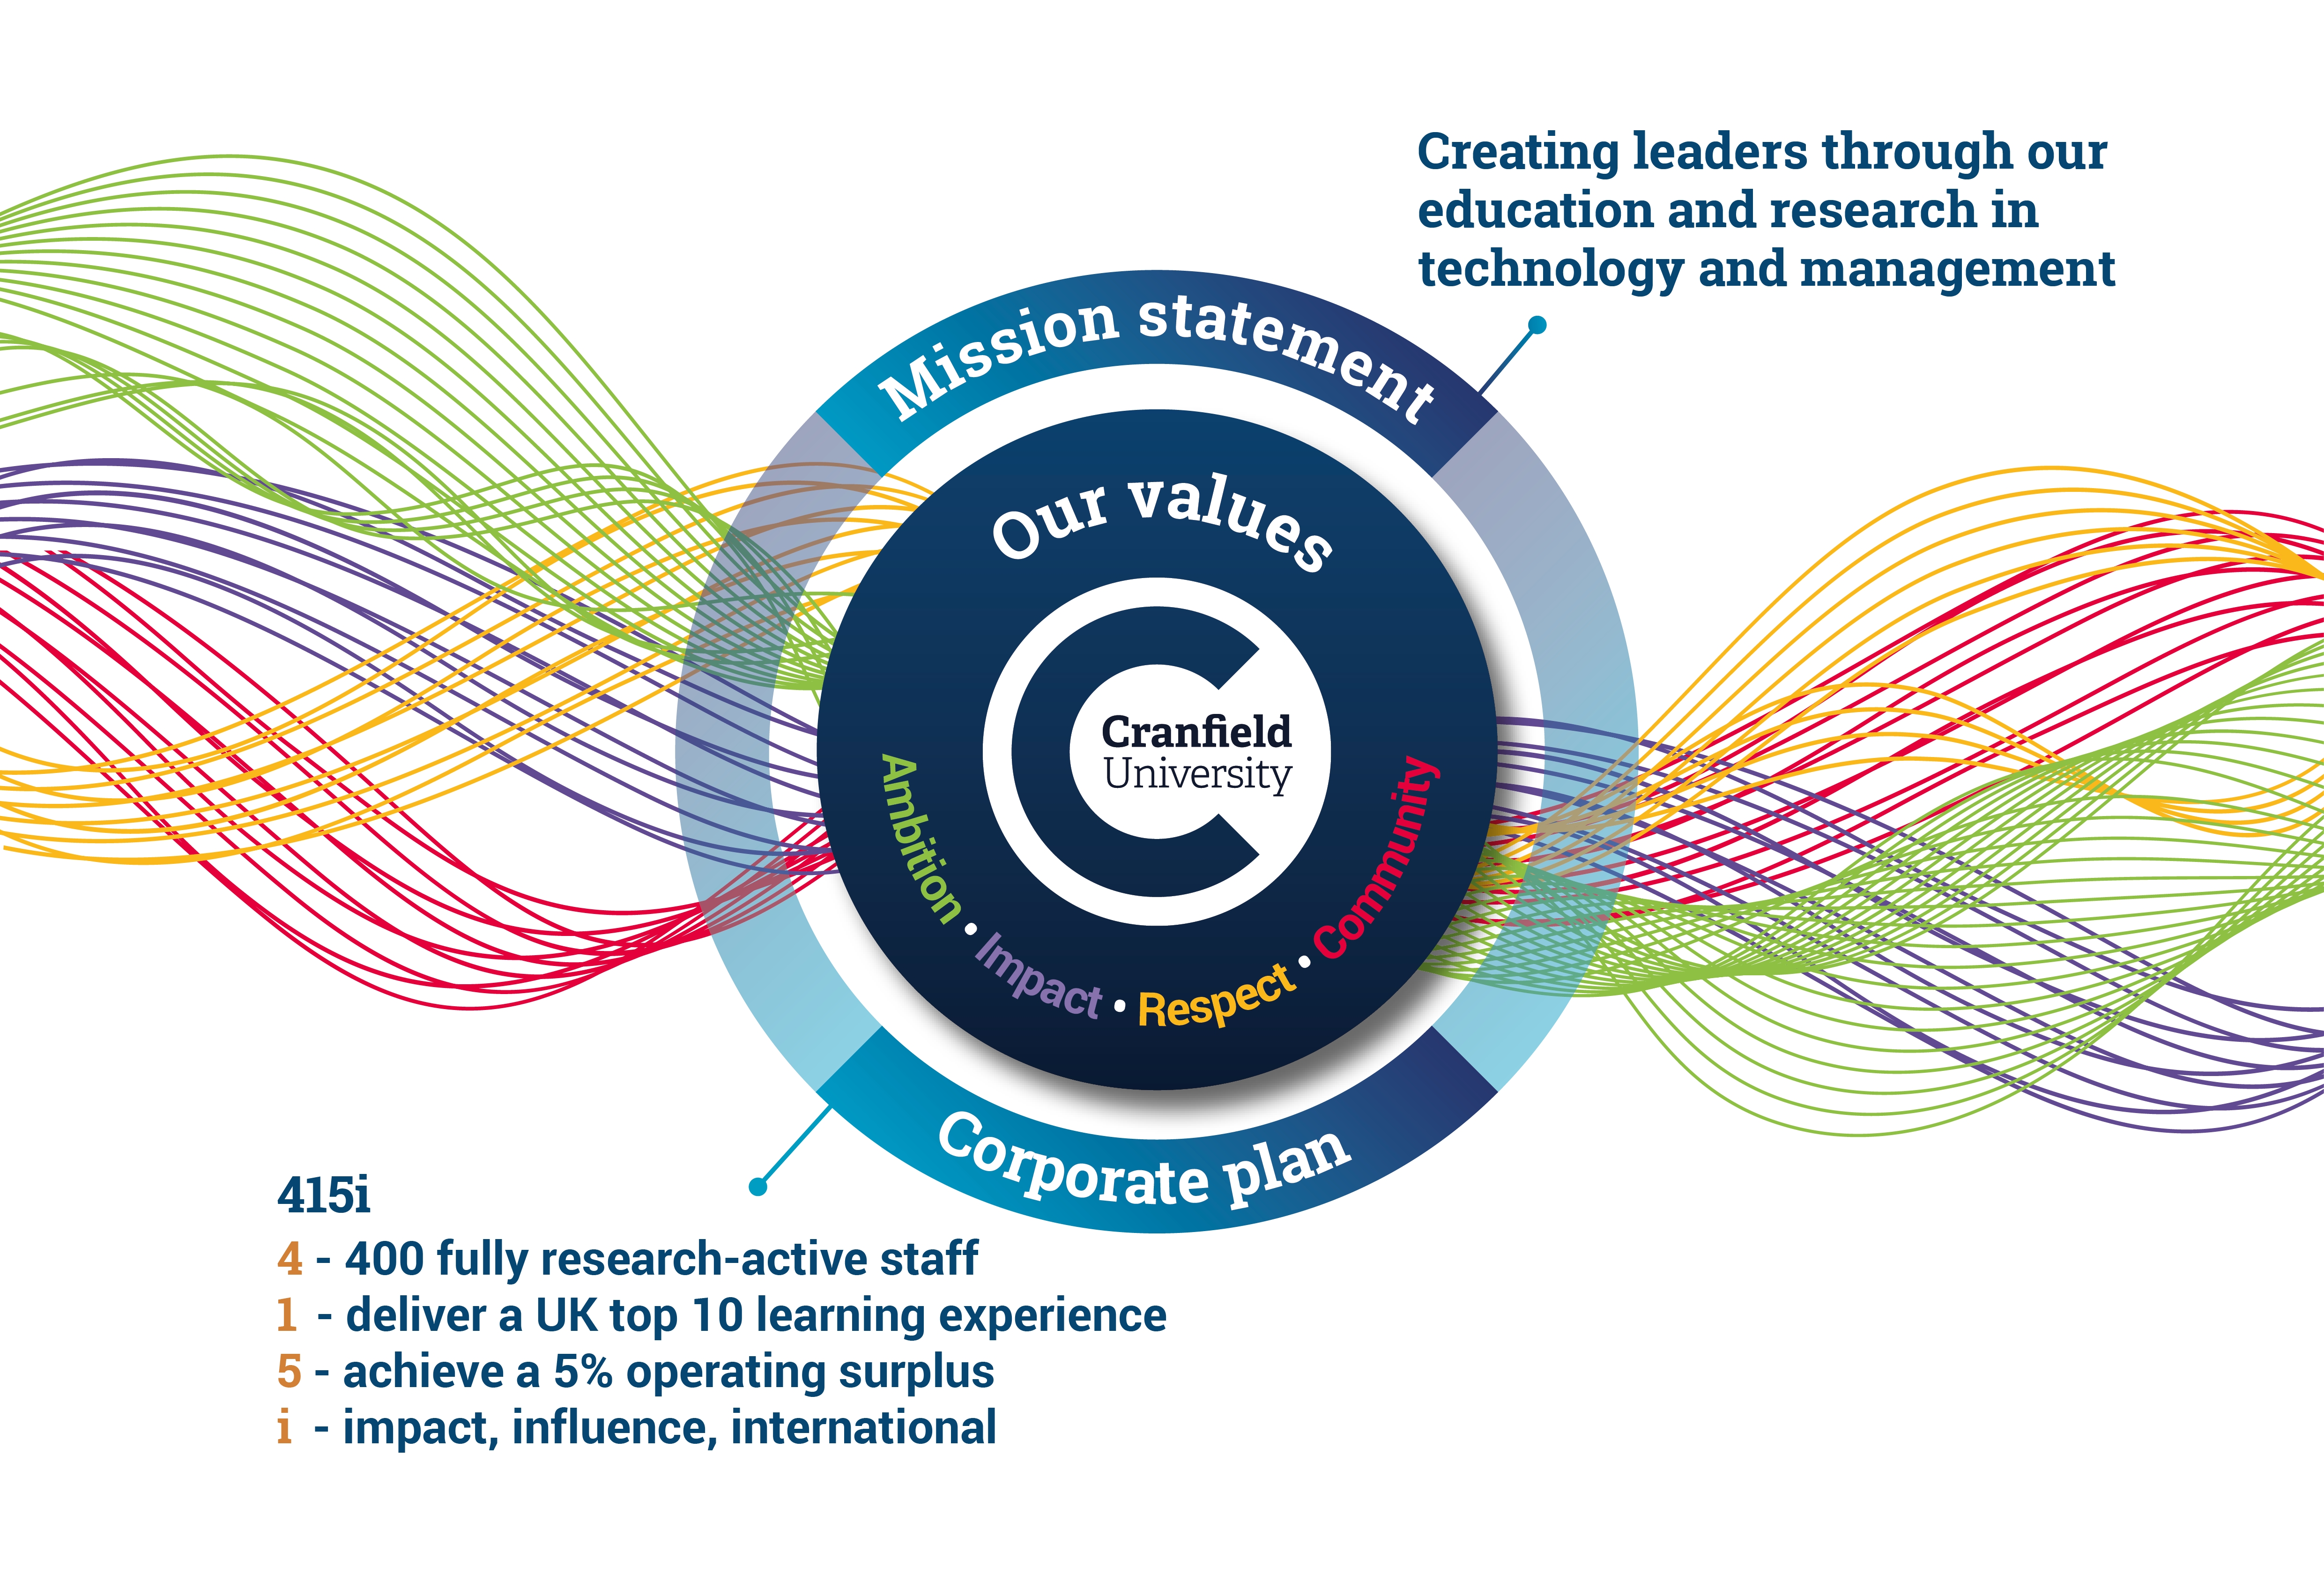 Mission statement, values, corporate plan infographic